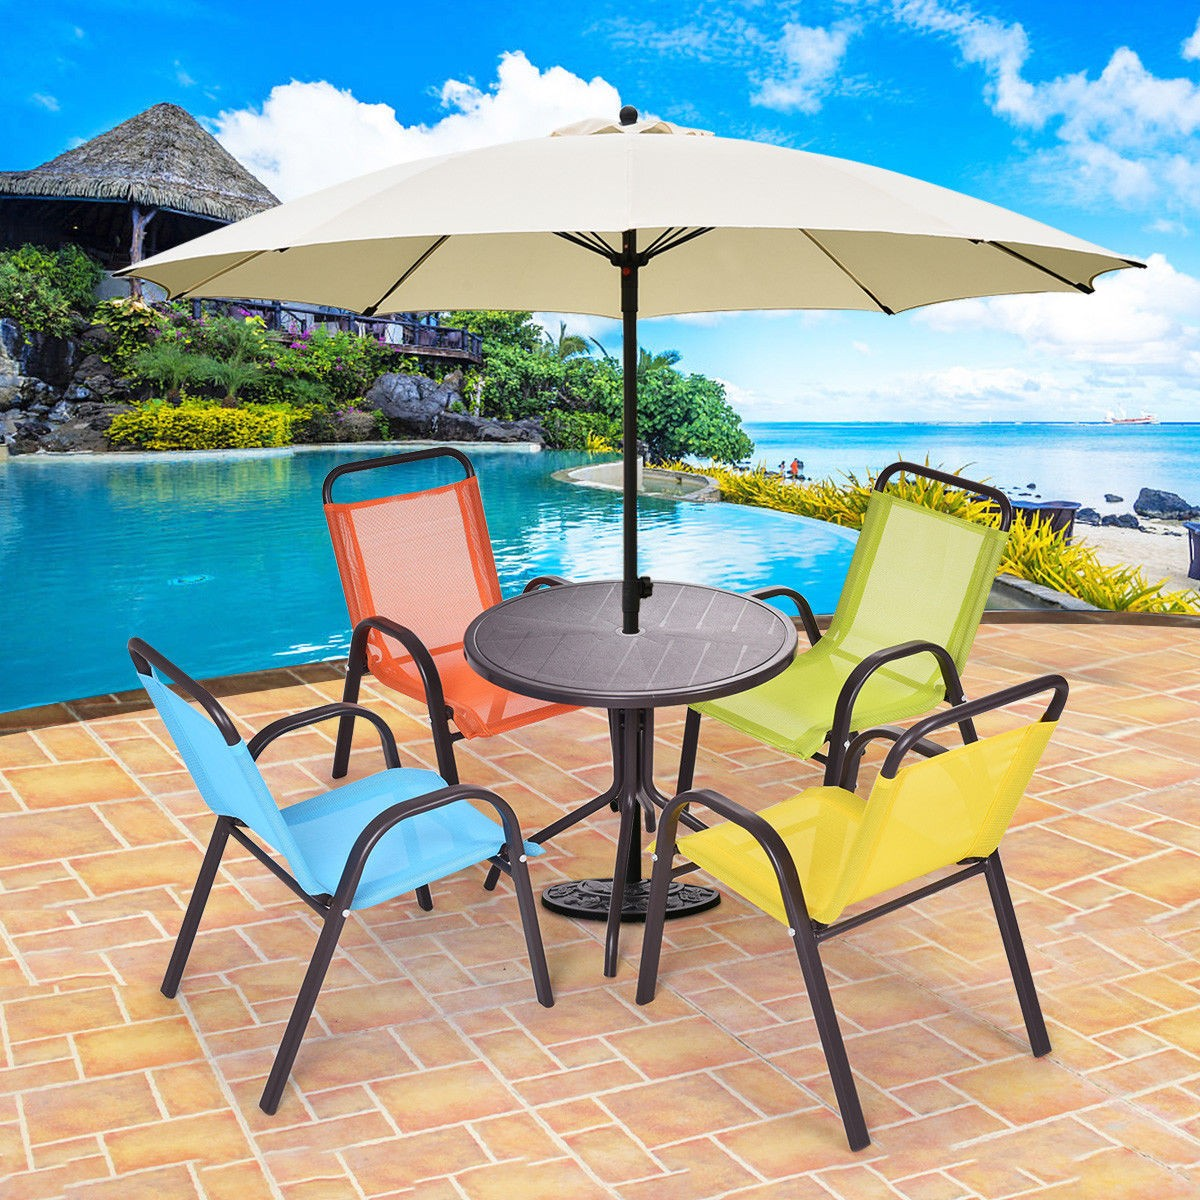 Magnificent Details About 5Pcs Set Kids Patio Dining Table And Chairs Play Colorful Outdoor Furniture Us Download Free Architecture Designs Scobabritishbridgeorg